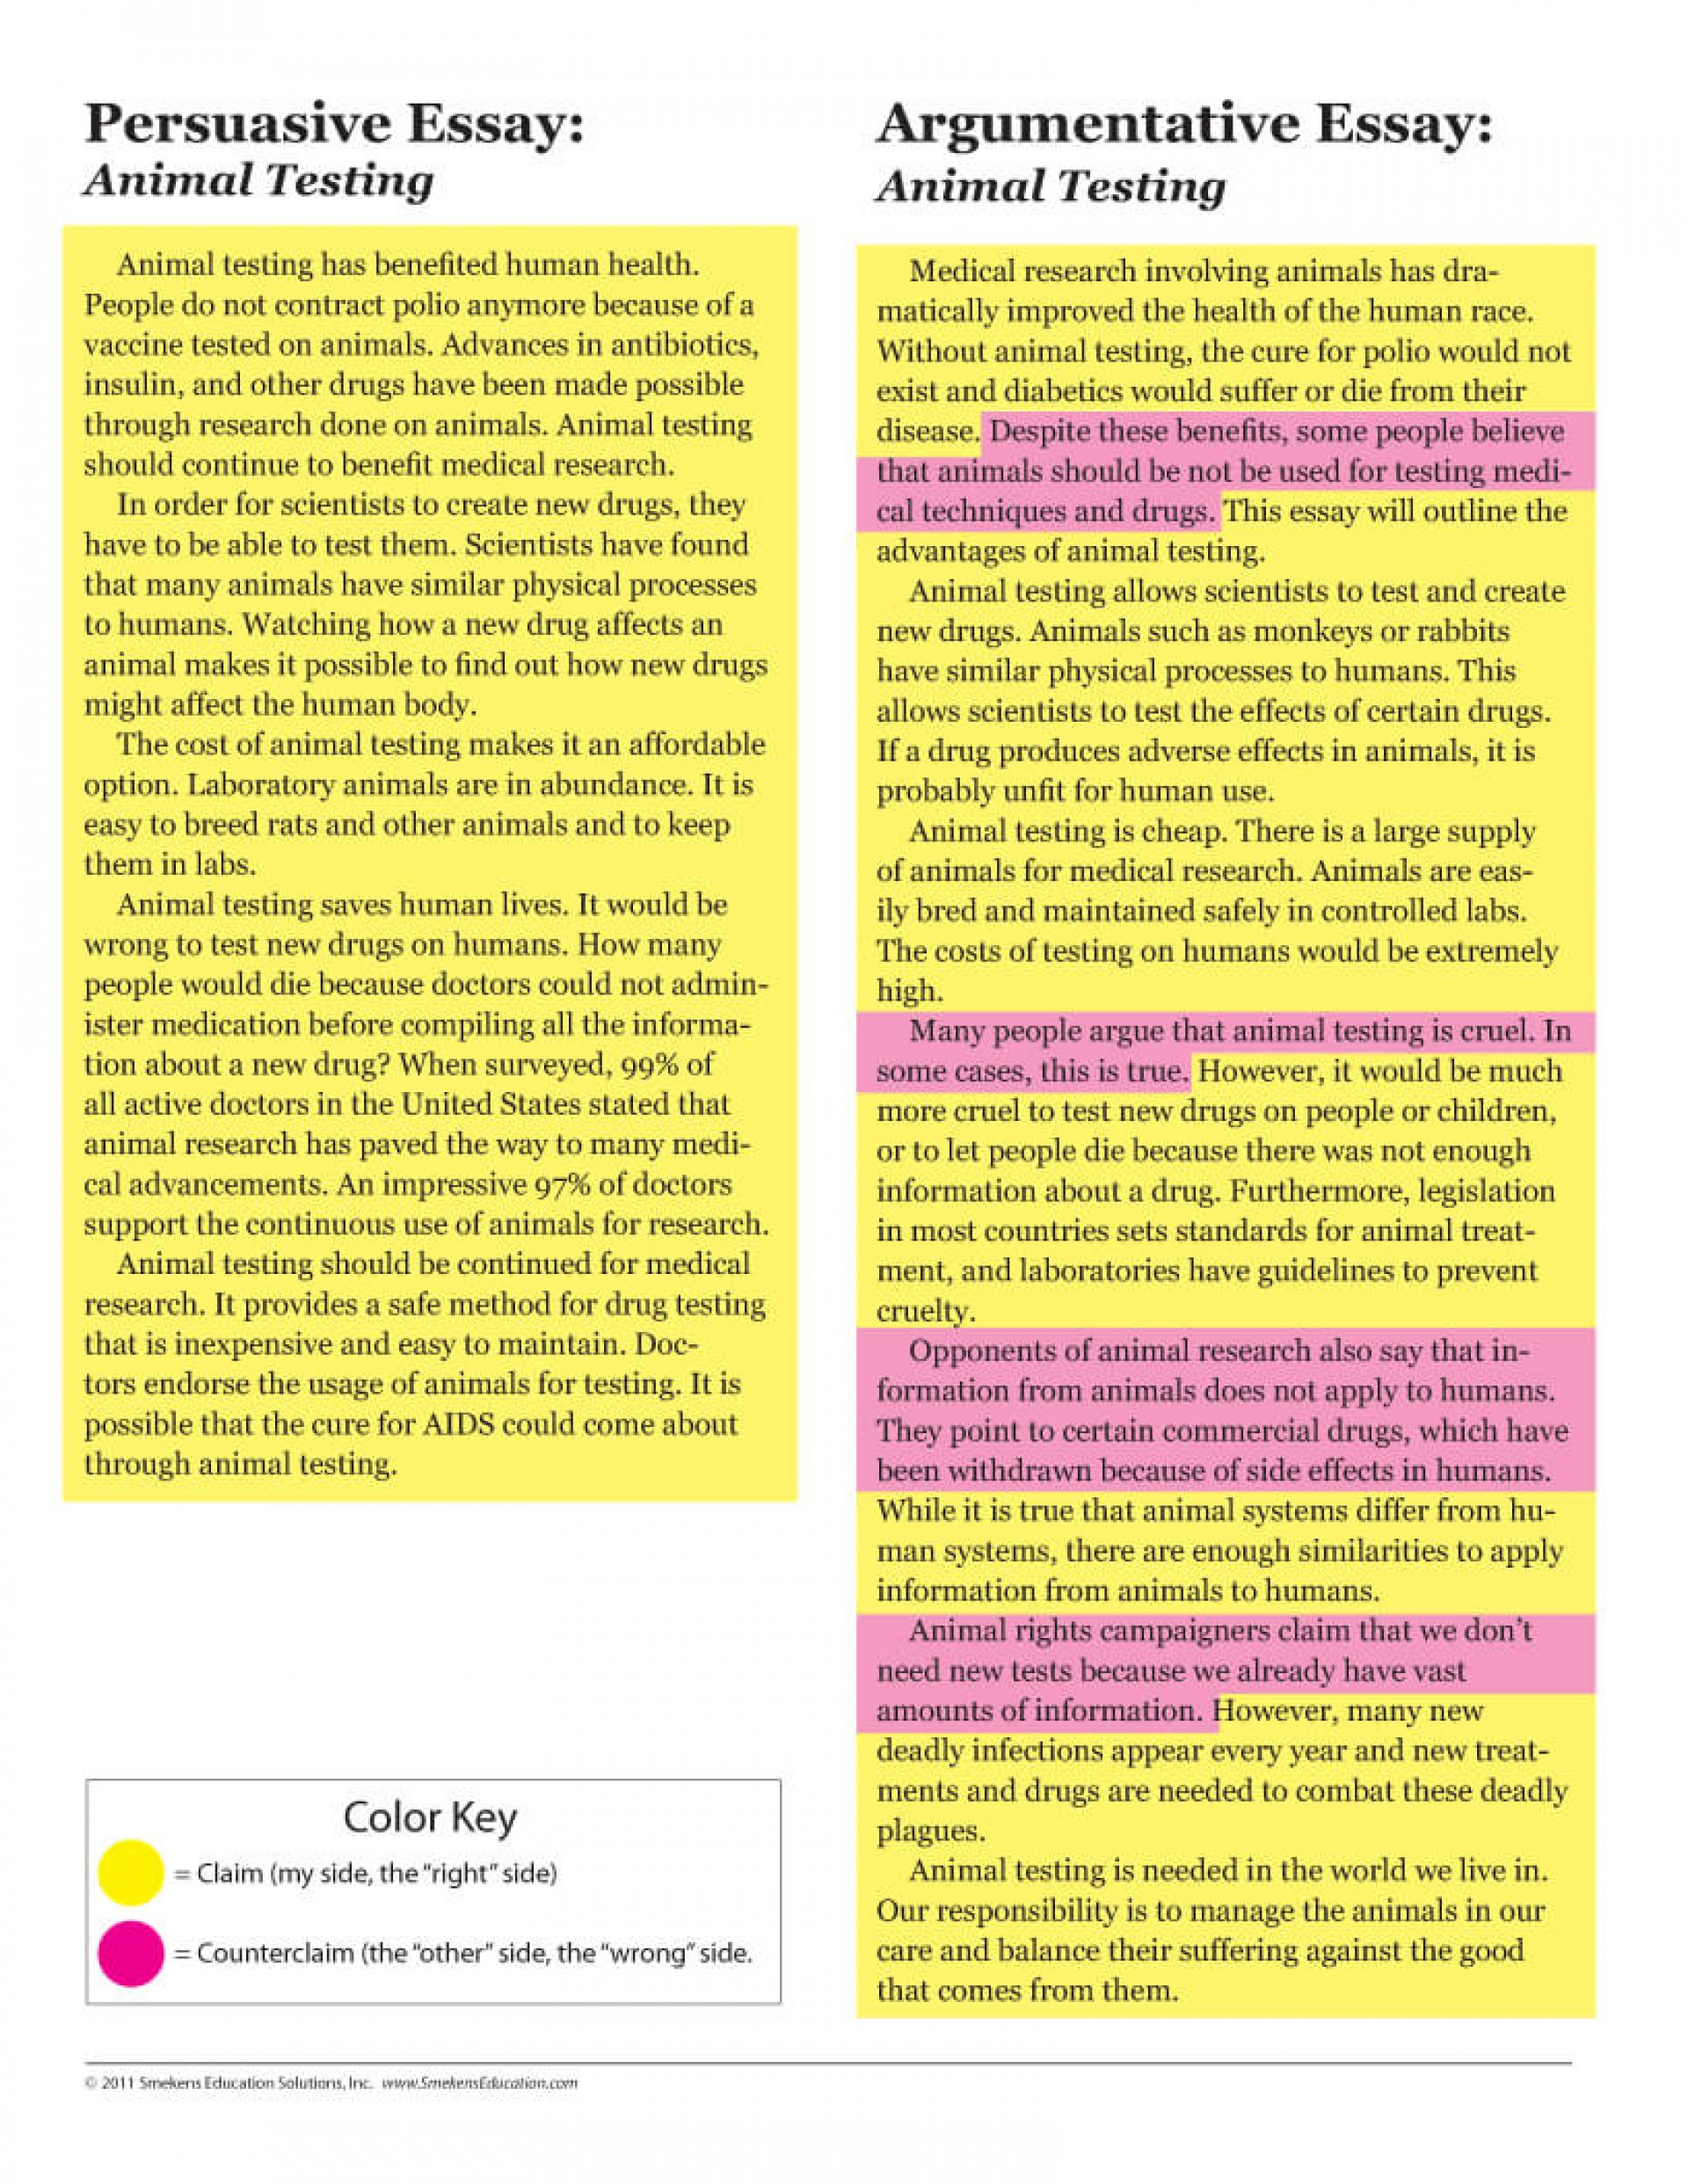 025 Arg V Pers Animal Testing Color Key O How To Write Counterclaim In An Argumentative Essay Unusual A Rebuttal Make 1920